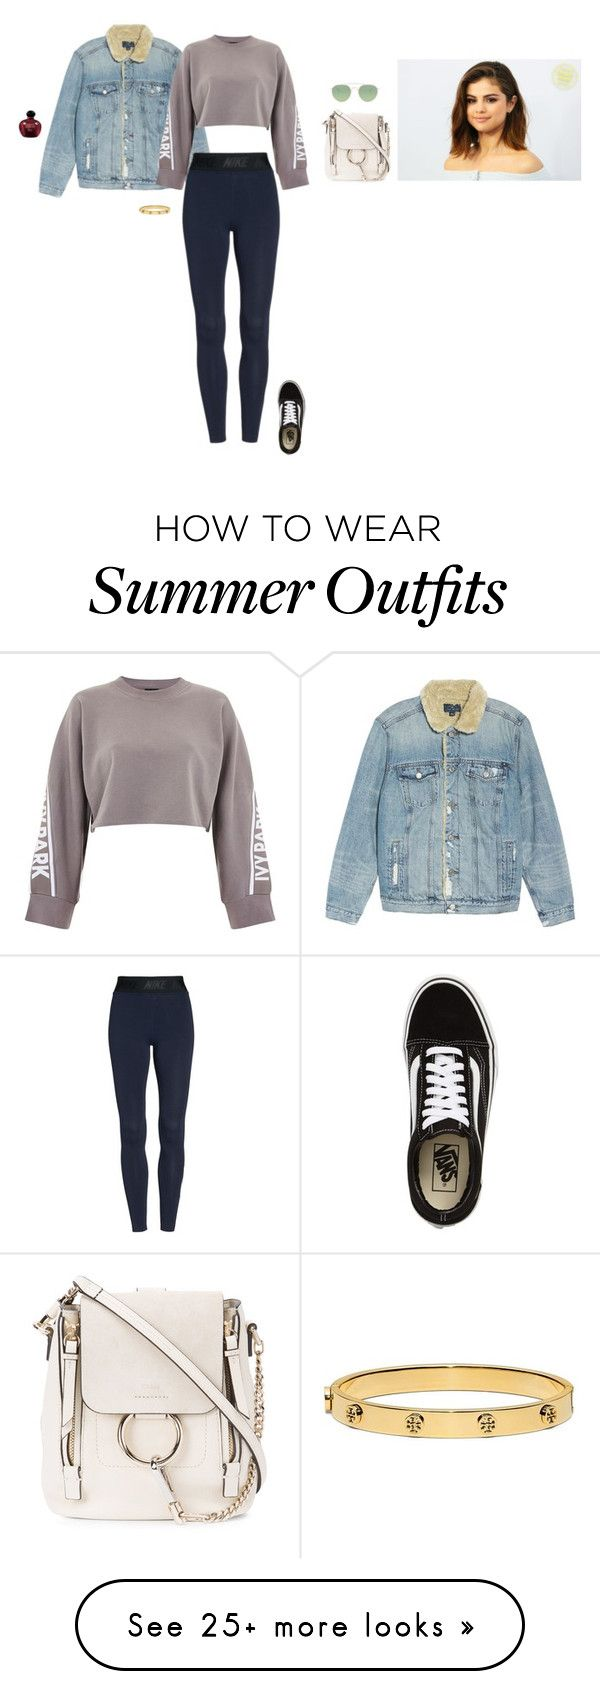 """""""Untitled #4361"""" by gracewirth101 on Polyvore featuring Lucky Brand, NIKE, Ivy Park, Vans, Chloé, Barton Perreira, Tory Burch and Christian Dior"""